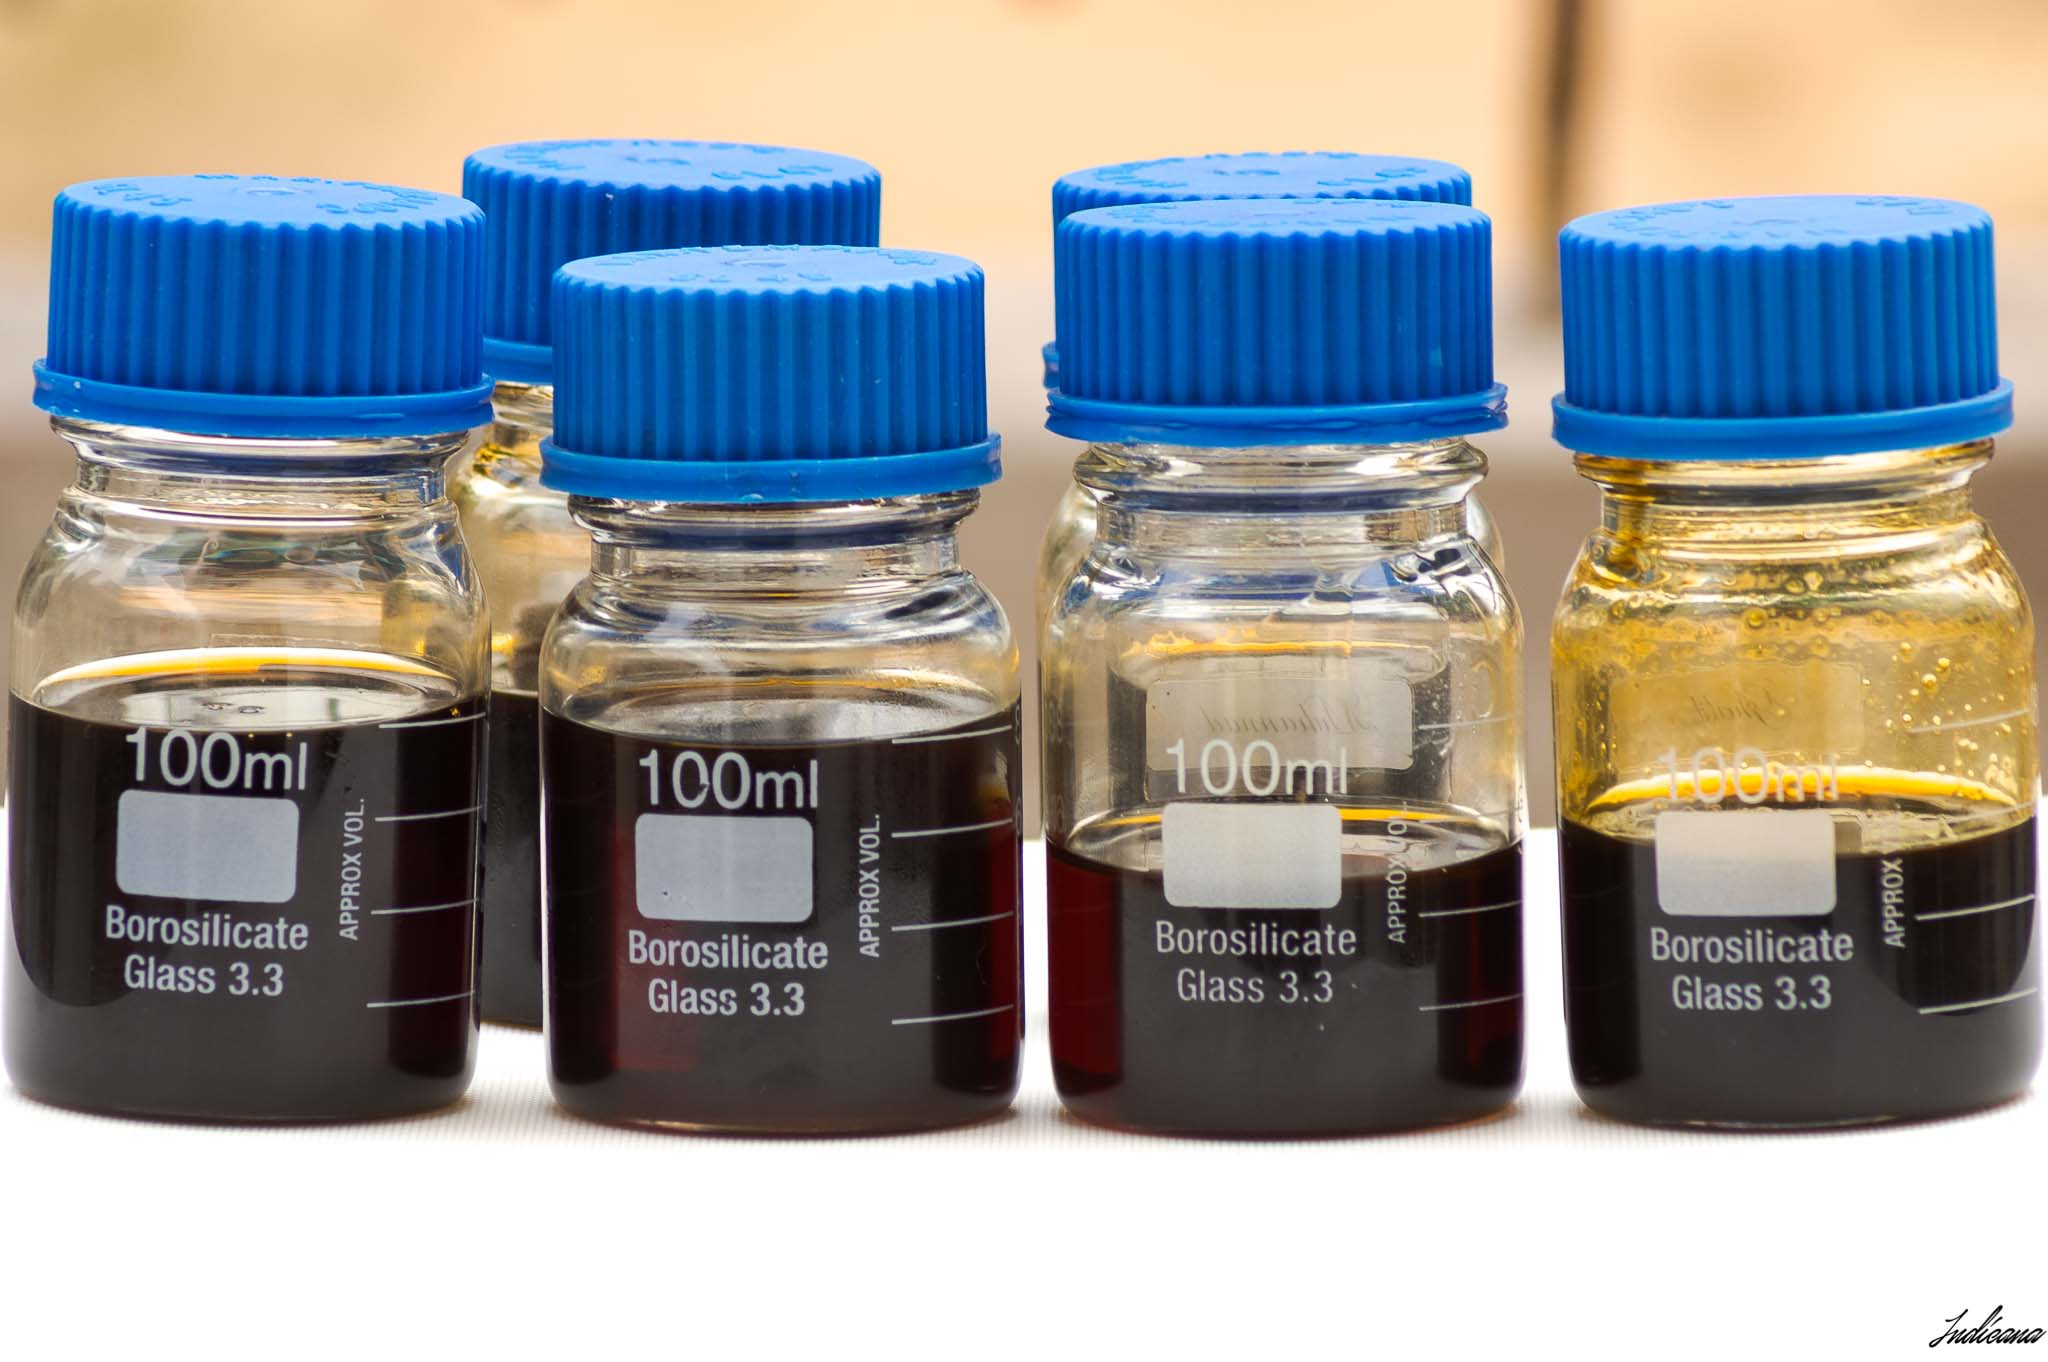 Pure Agarwood Oils from India